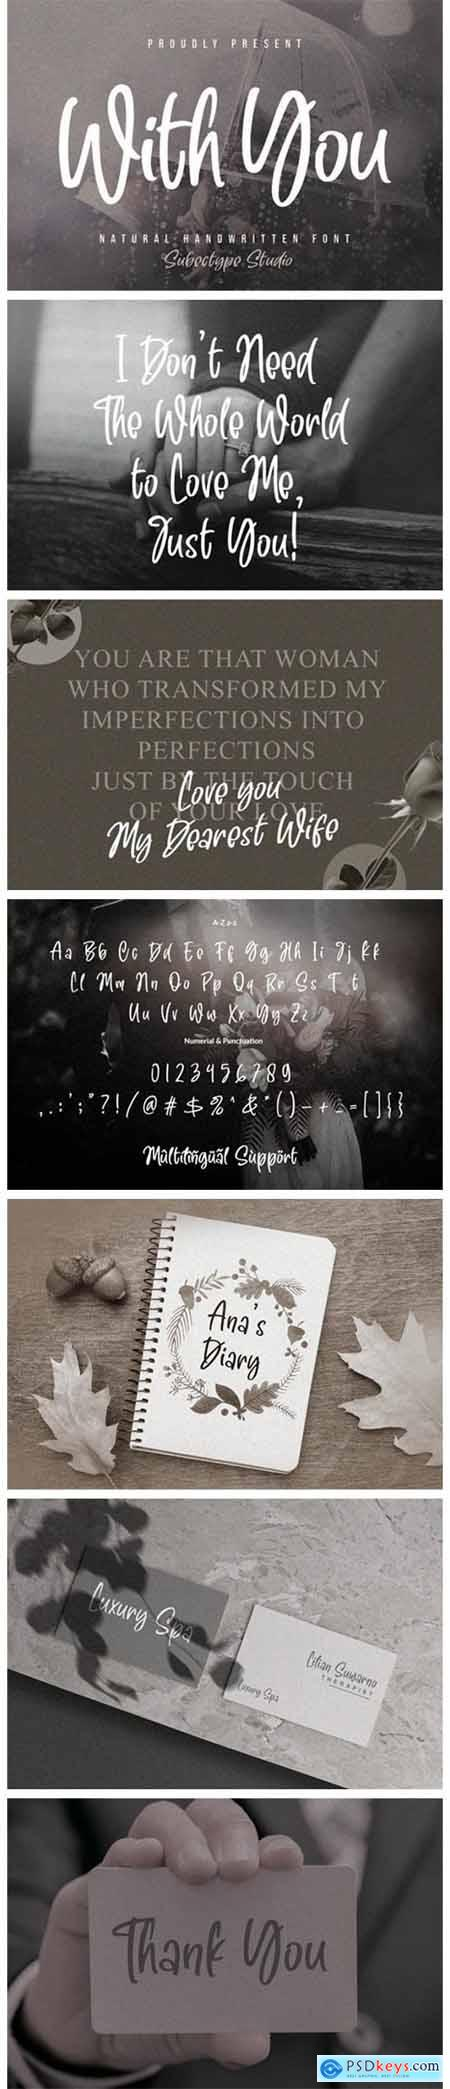 With You Font